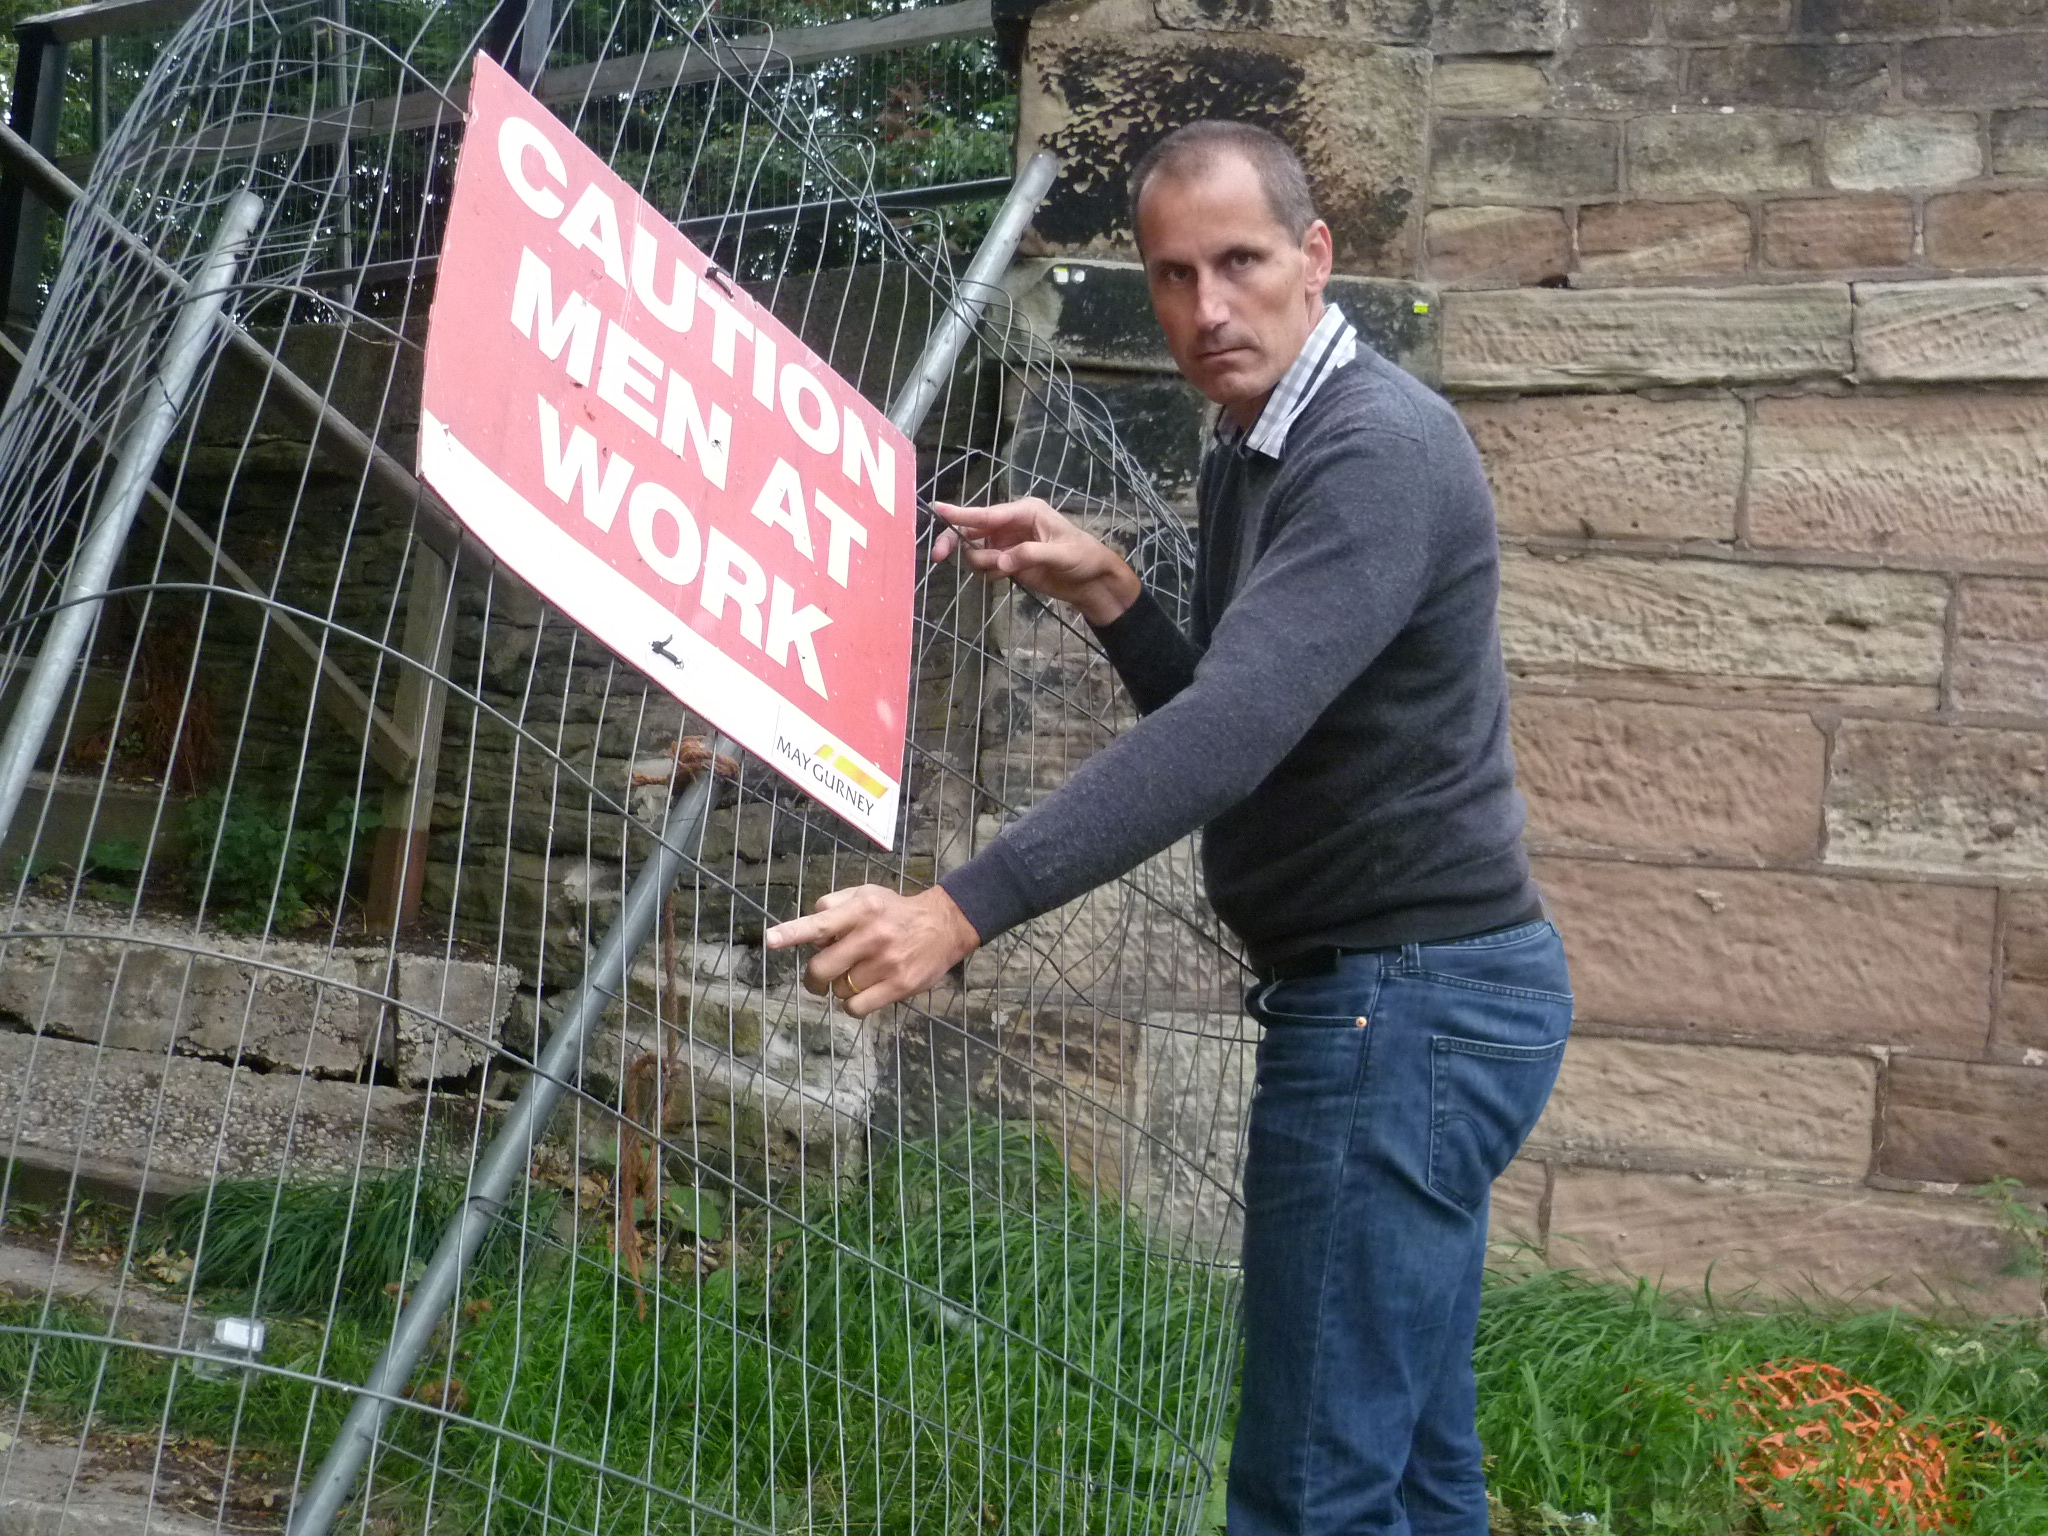 Bill Esterson MP with the sign which suggests work is underway.